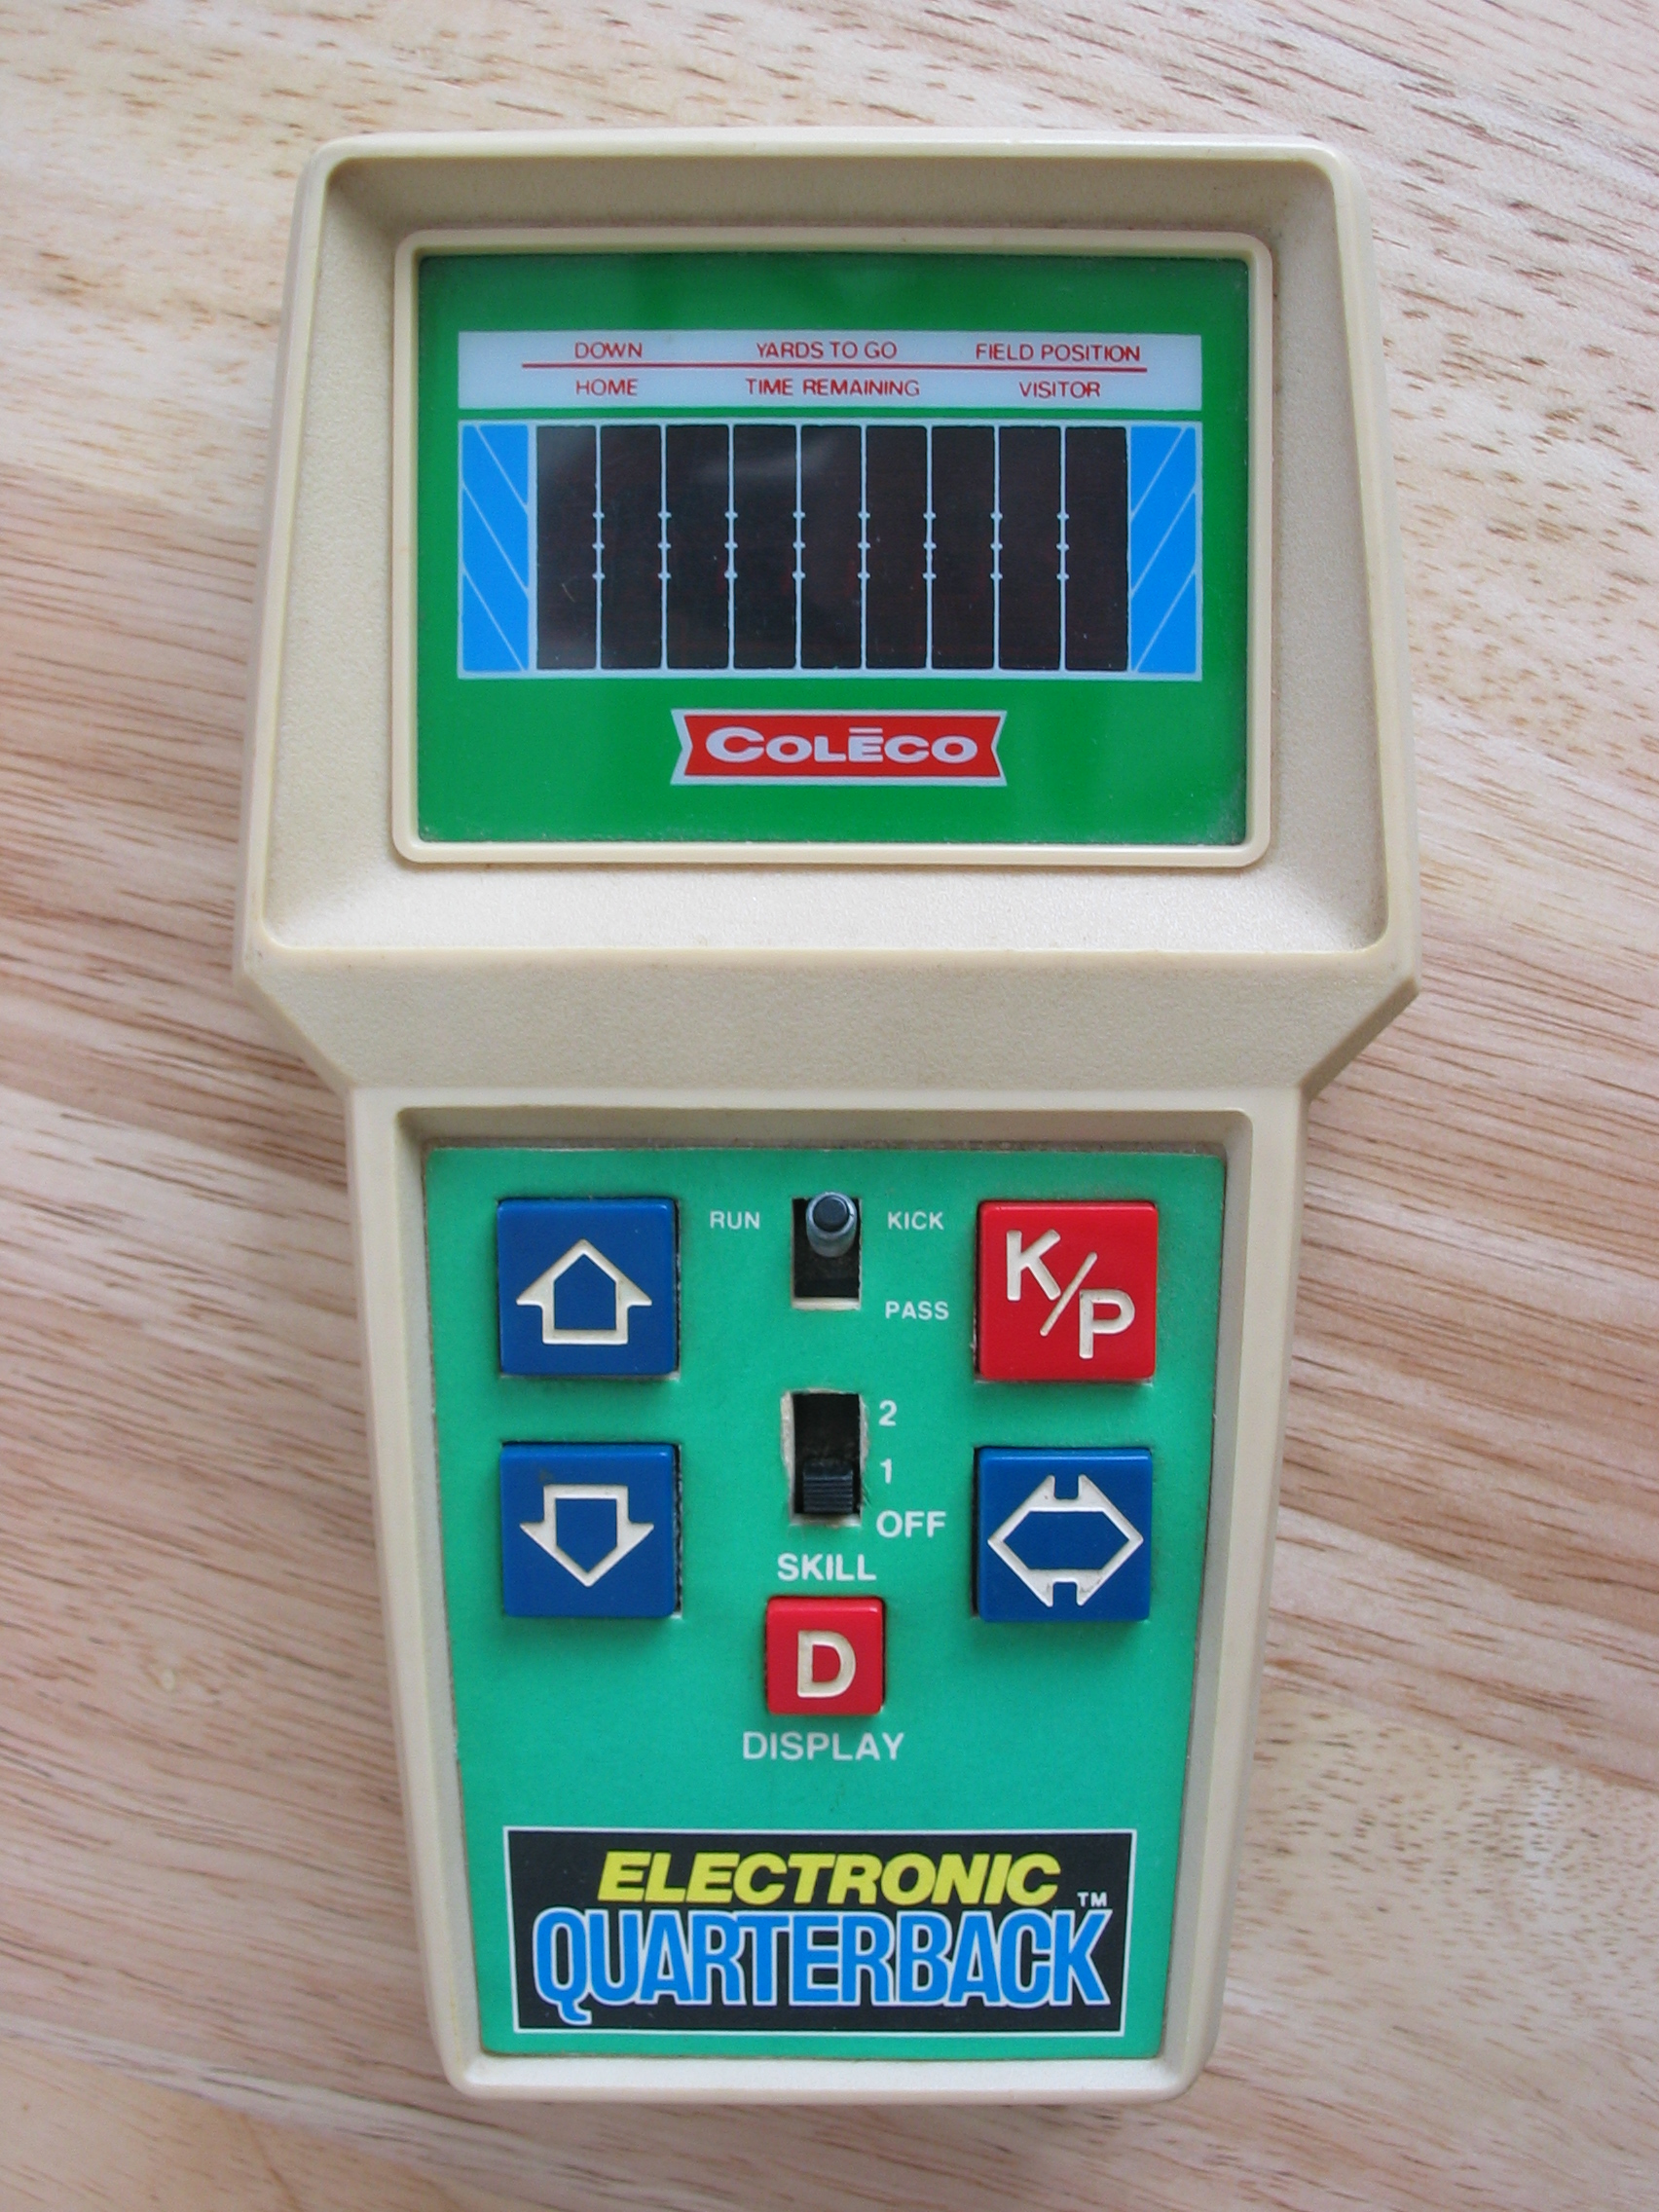 Coleco Electronic Quarterback: One of our favorite holiday gifts from our own childhoods.